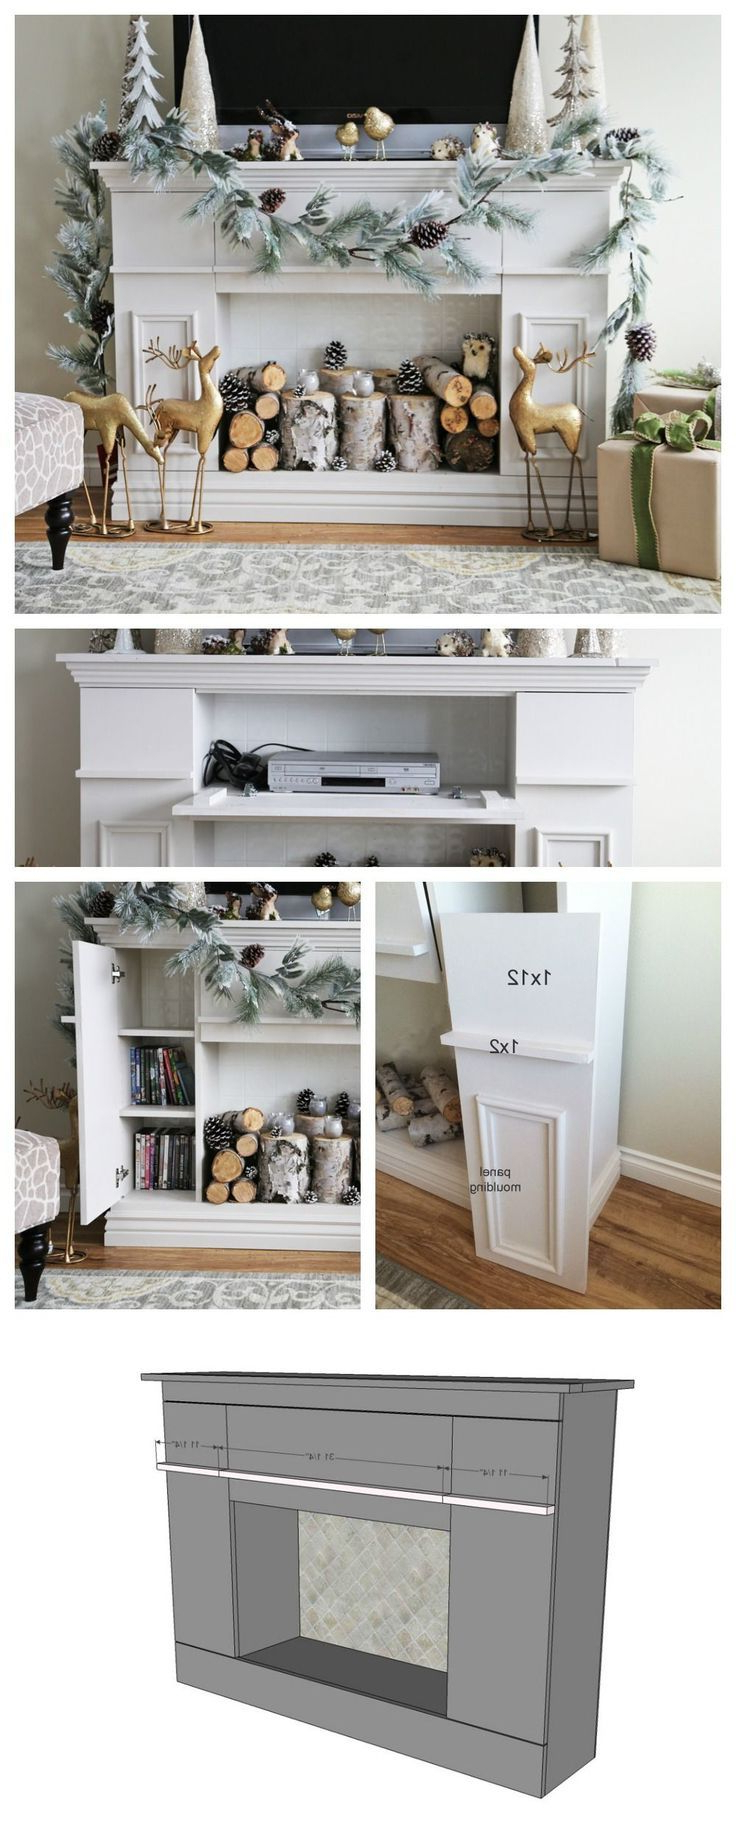 9 Best Fireplace Images On Pinterest (View 2 of 20)